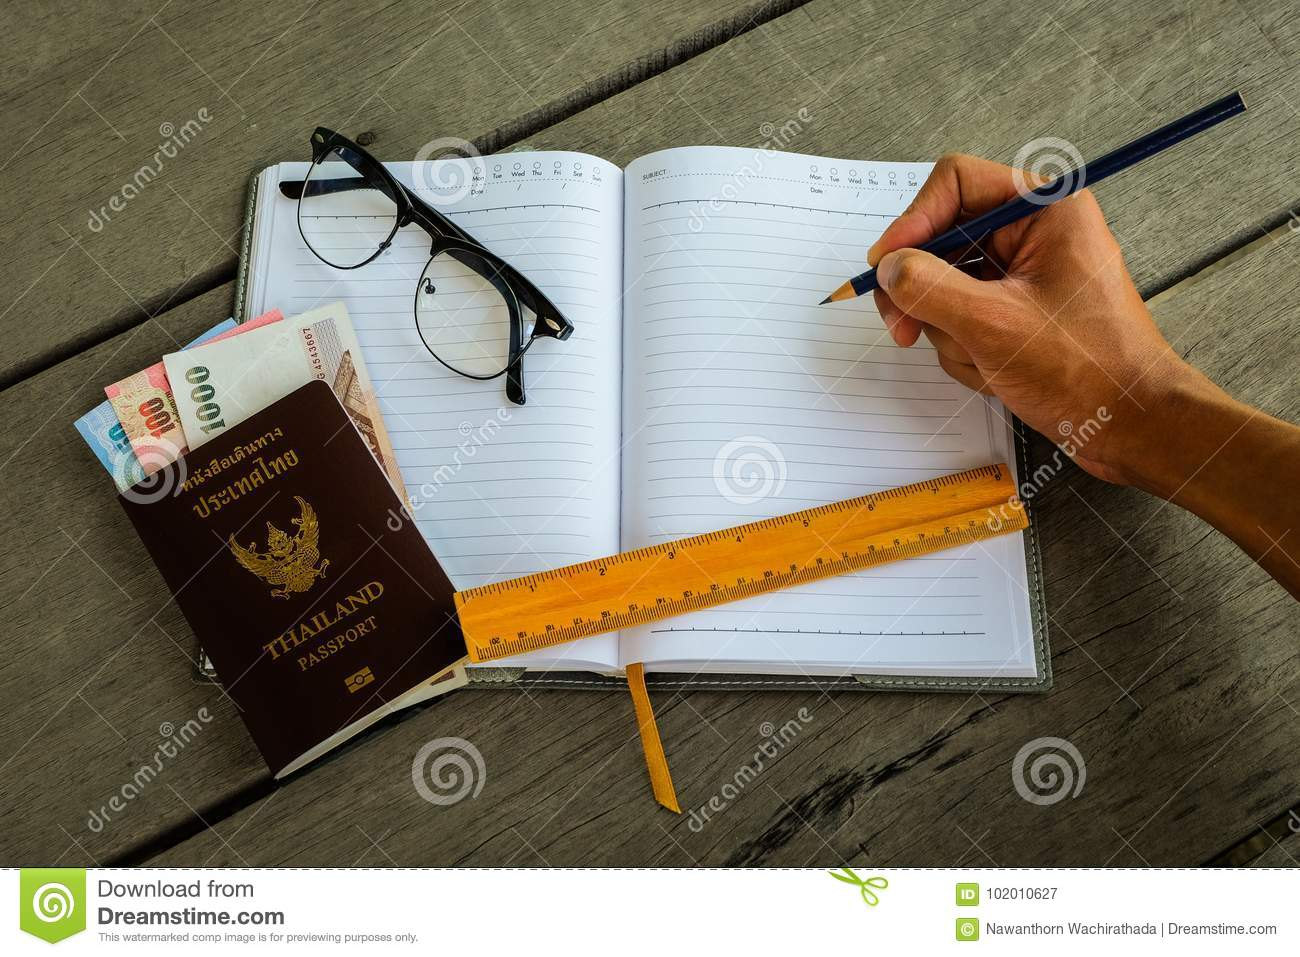 Thailand passport with money, yellow ruler, hand with pencil